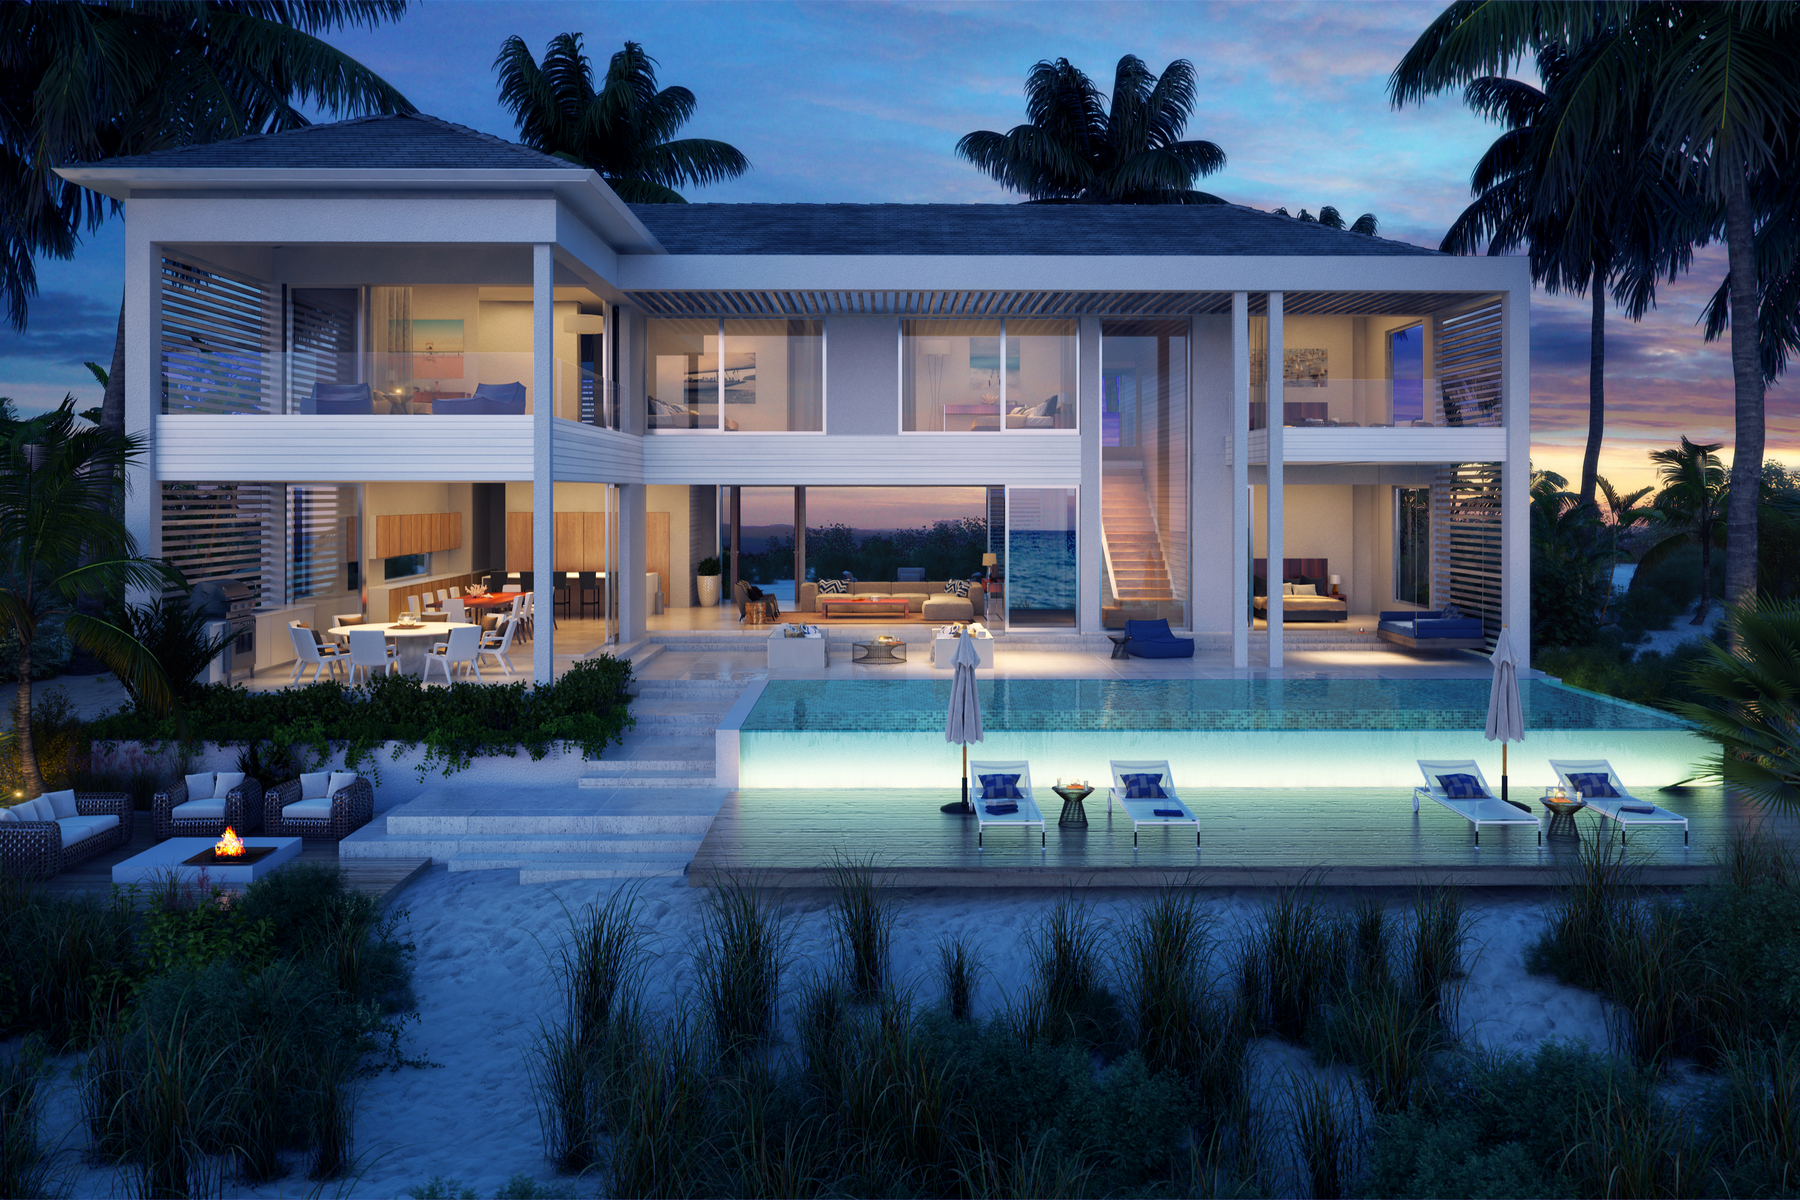 Single Family Home for Sale at BEACH ENCLAVE GRACE BAY Design B Beachfront Grace Bay, Providenciales TKCA 1ZZ Turks And Caicos Islands